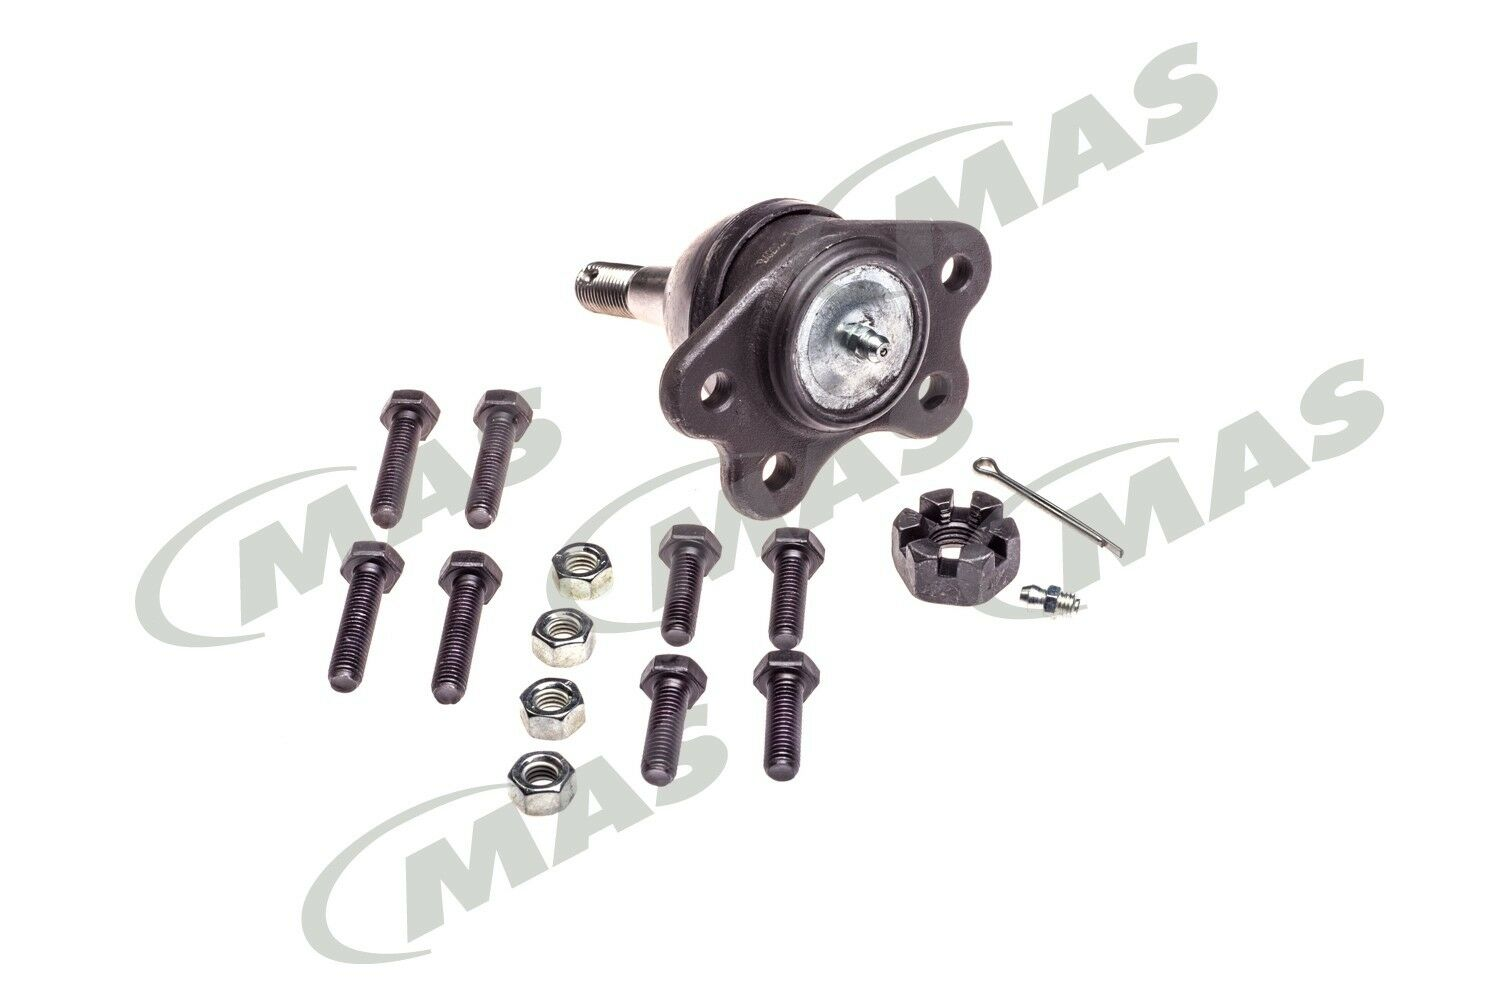 Suspension Ball Joint Rwd Front Upper Mas B6292 Ebay Gmc Envoy Stock Photo